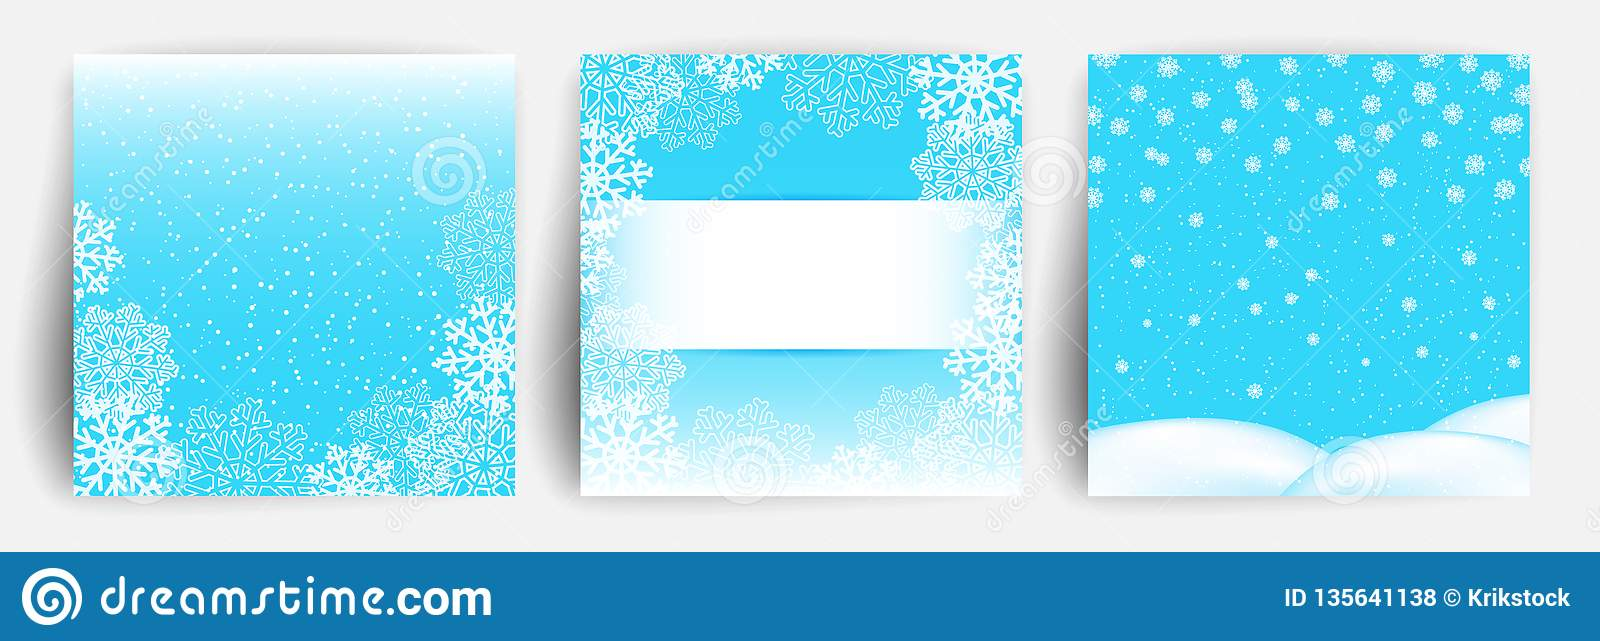 Snow background. Set of Christmas Greeting card design template for flyer, banner, invitation, congratulation. Christmas backdrops